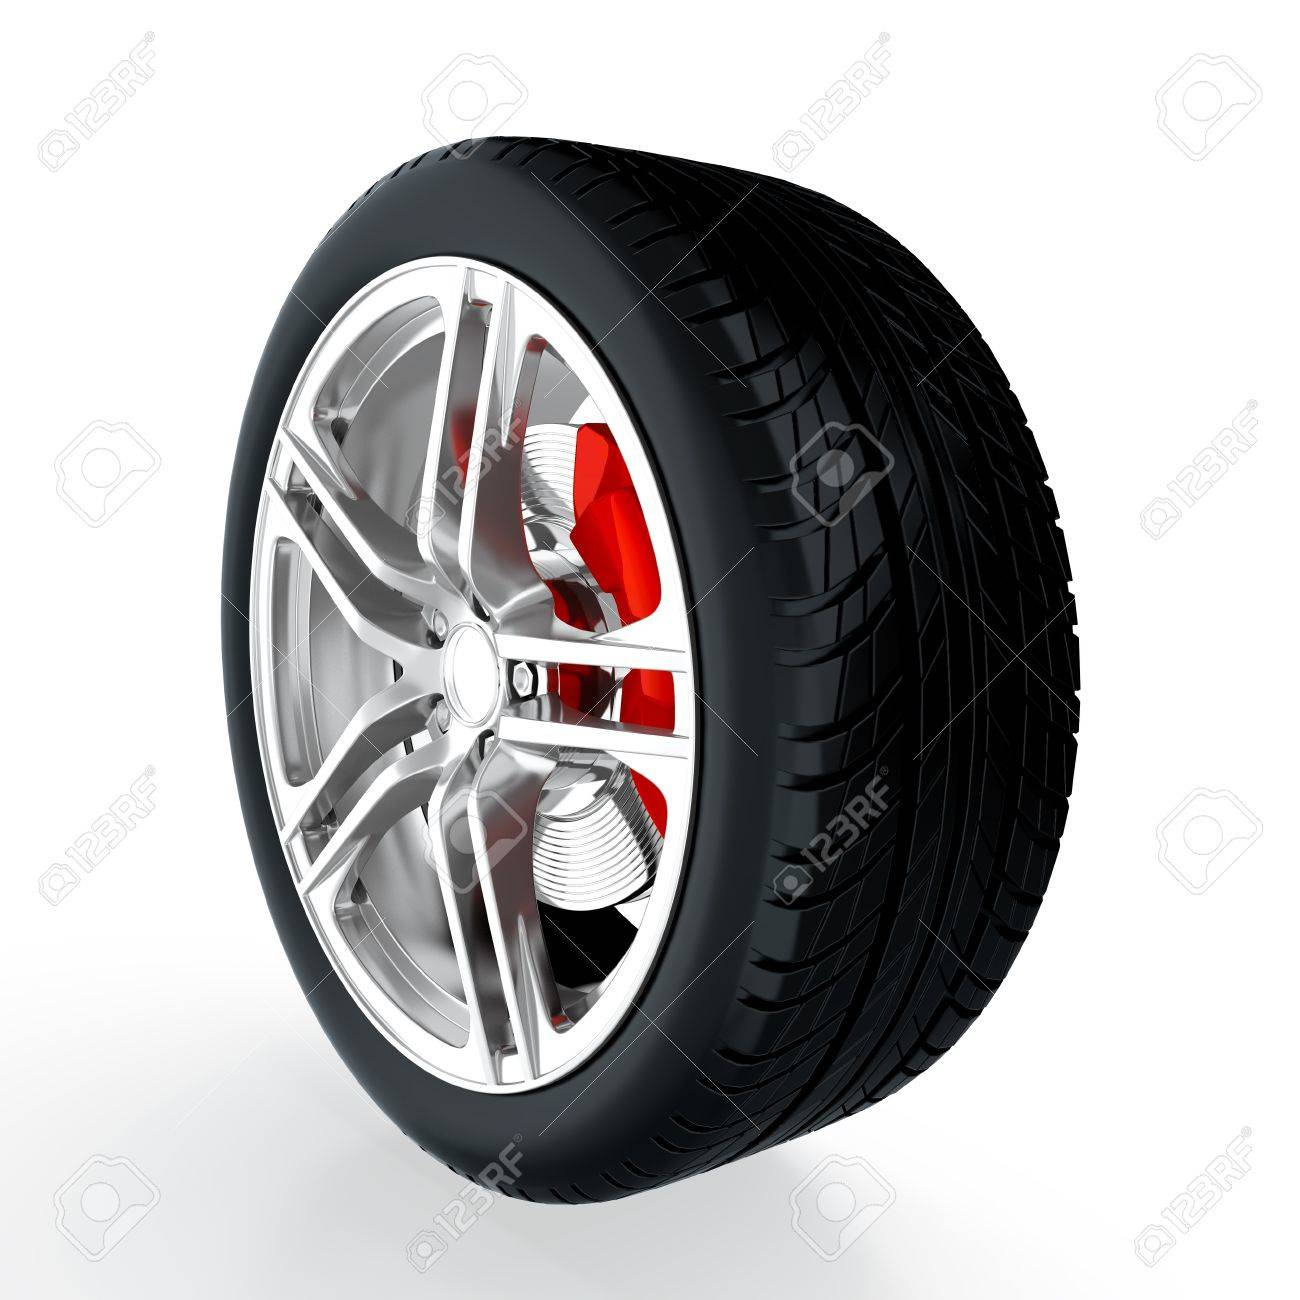 3D render of car wheel on white background Stock Photo - 14095432